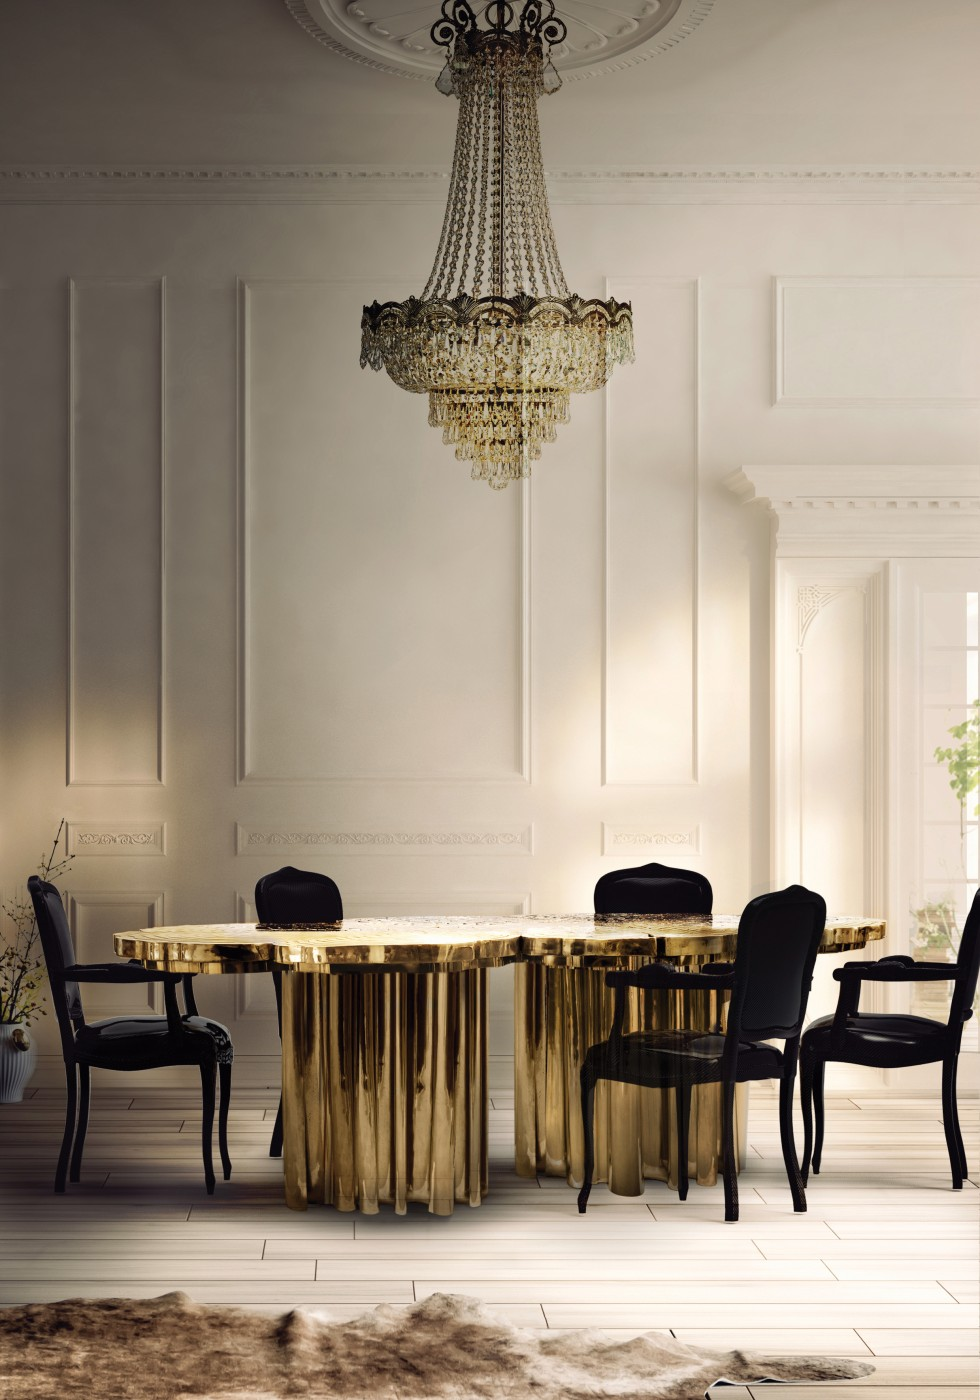 Luxury Dining Room Furniture: Lighting Ideas For Your Luxury Dining Room